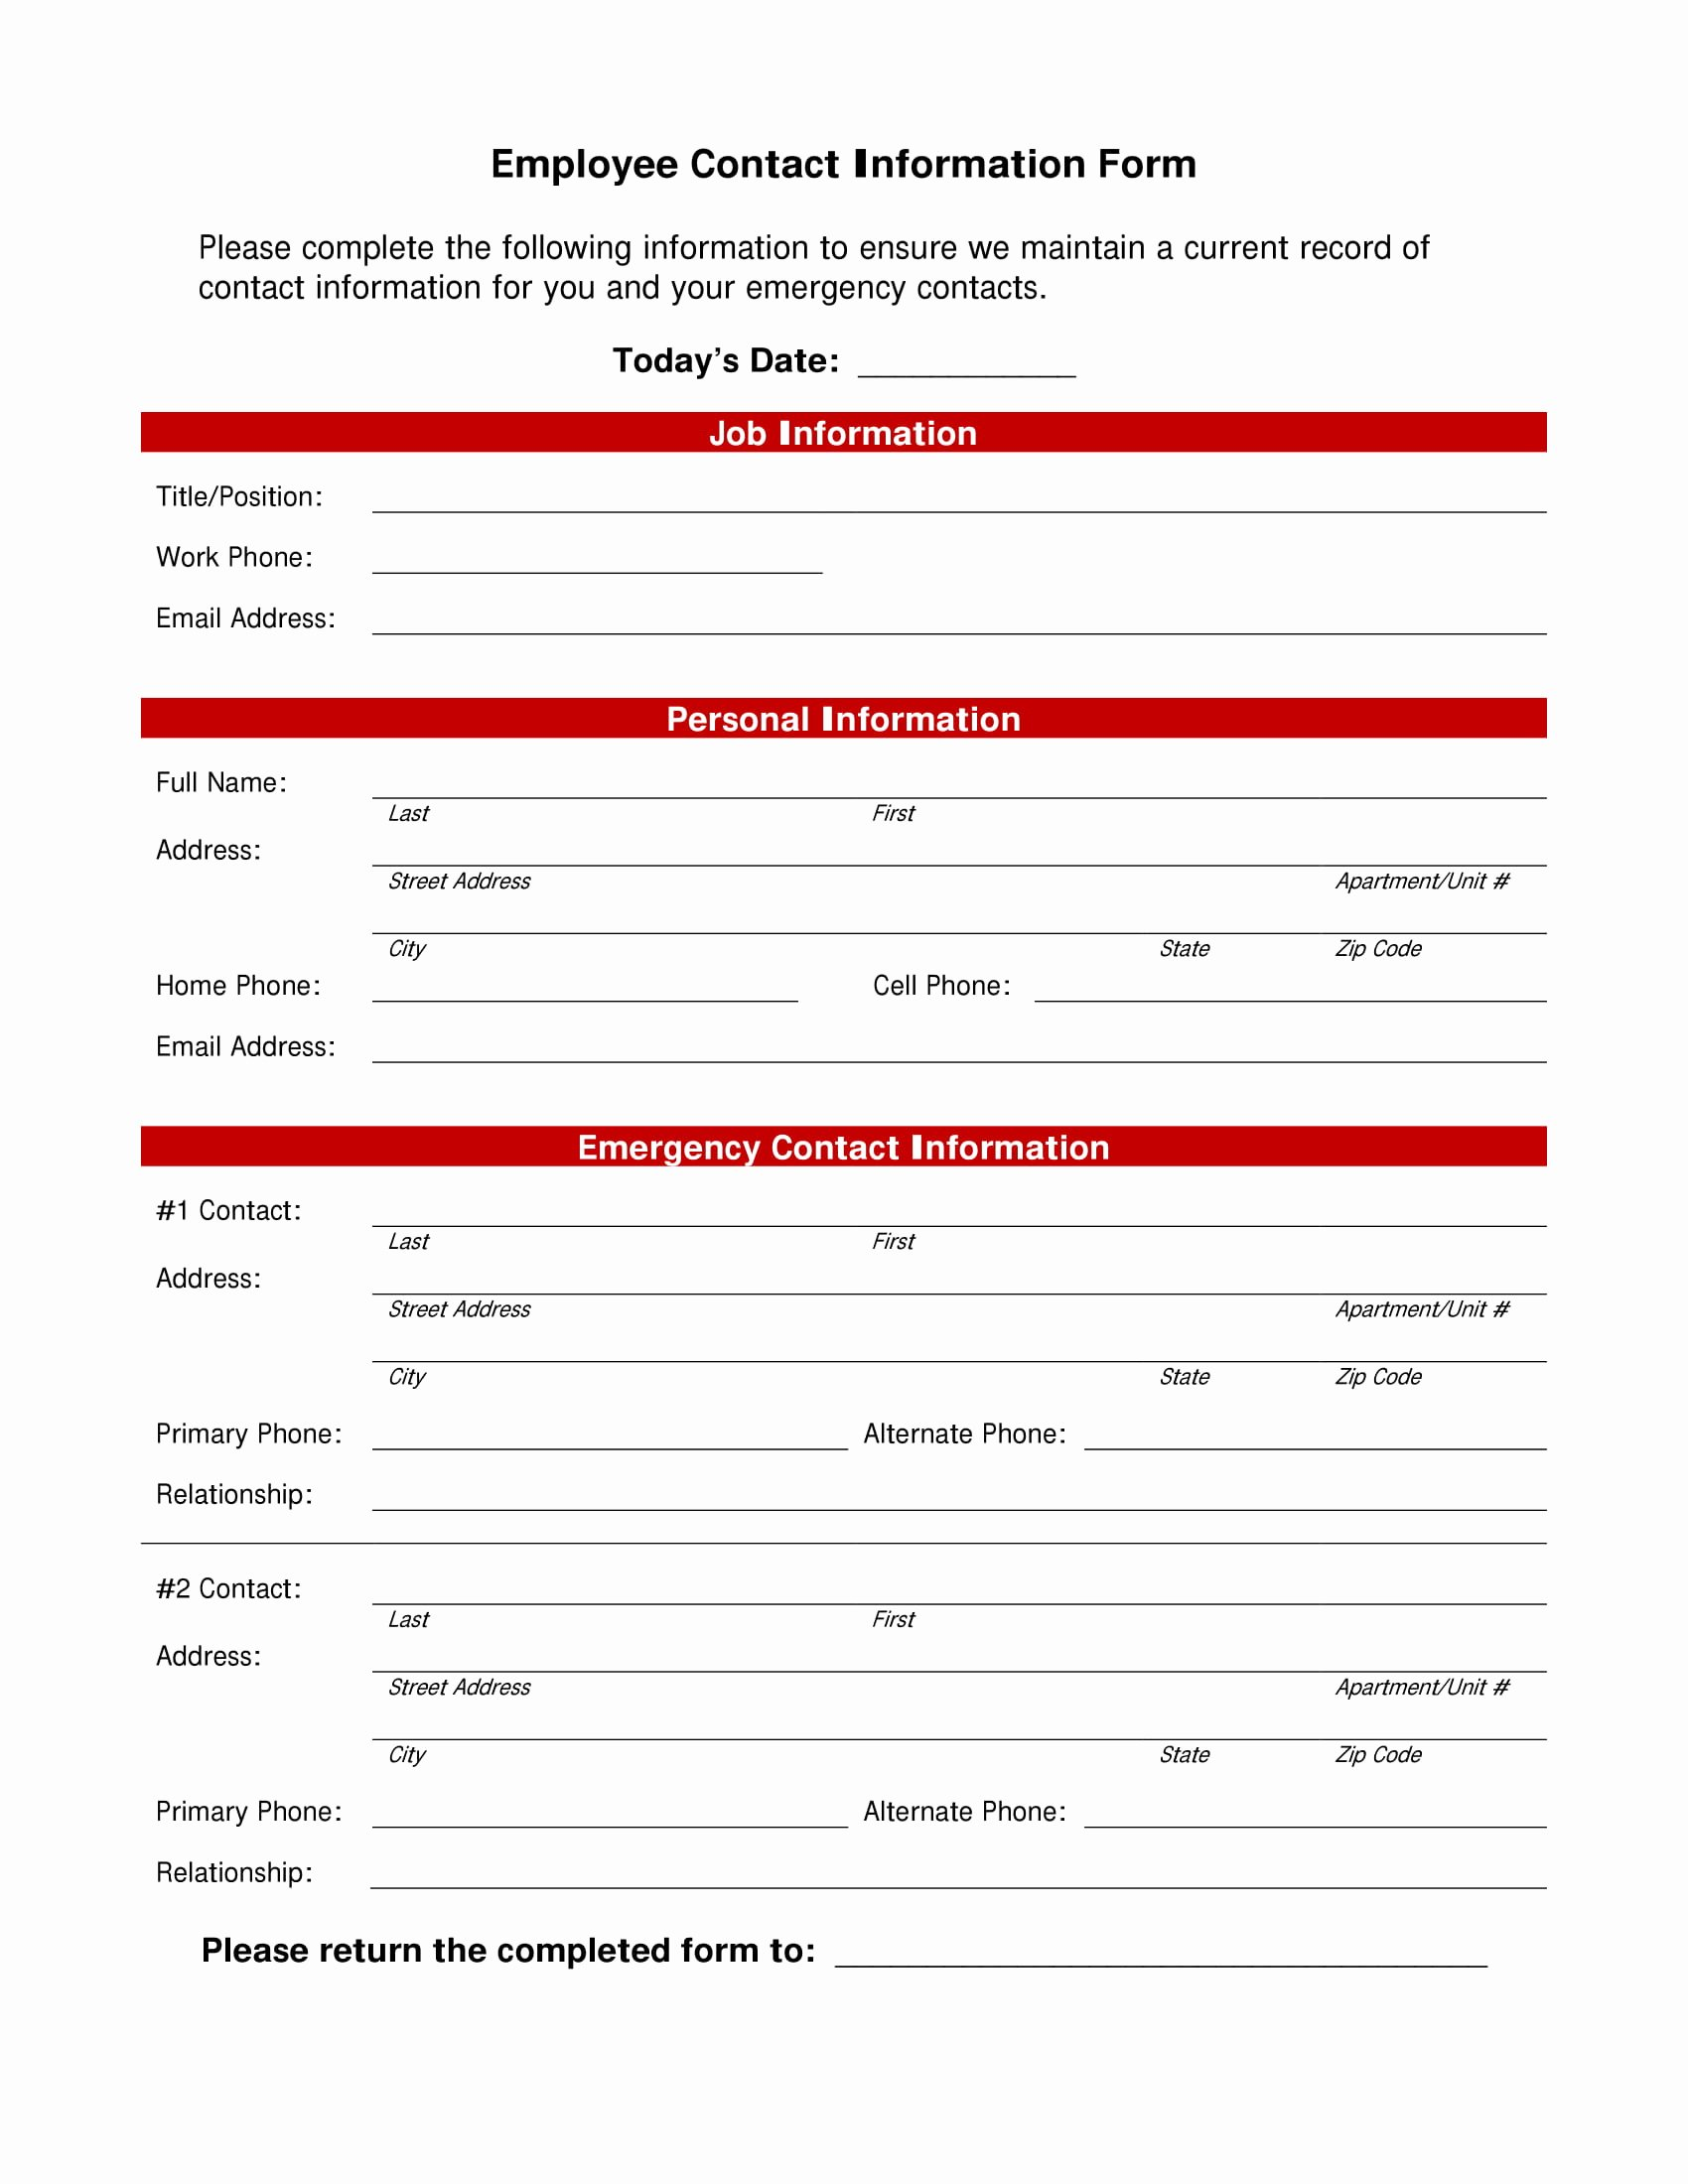 Employee Contact List Template New 10 Employee Information form Examples Pdf